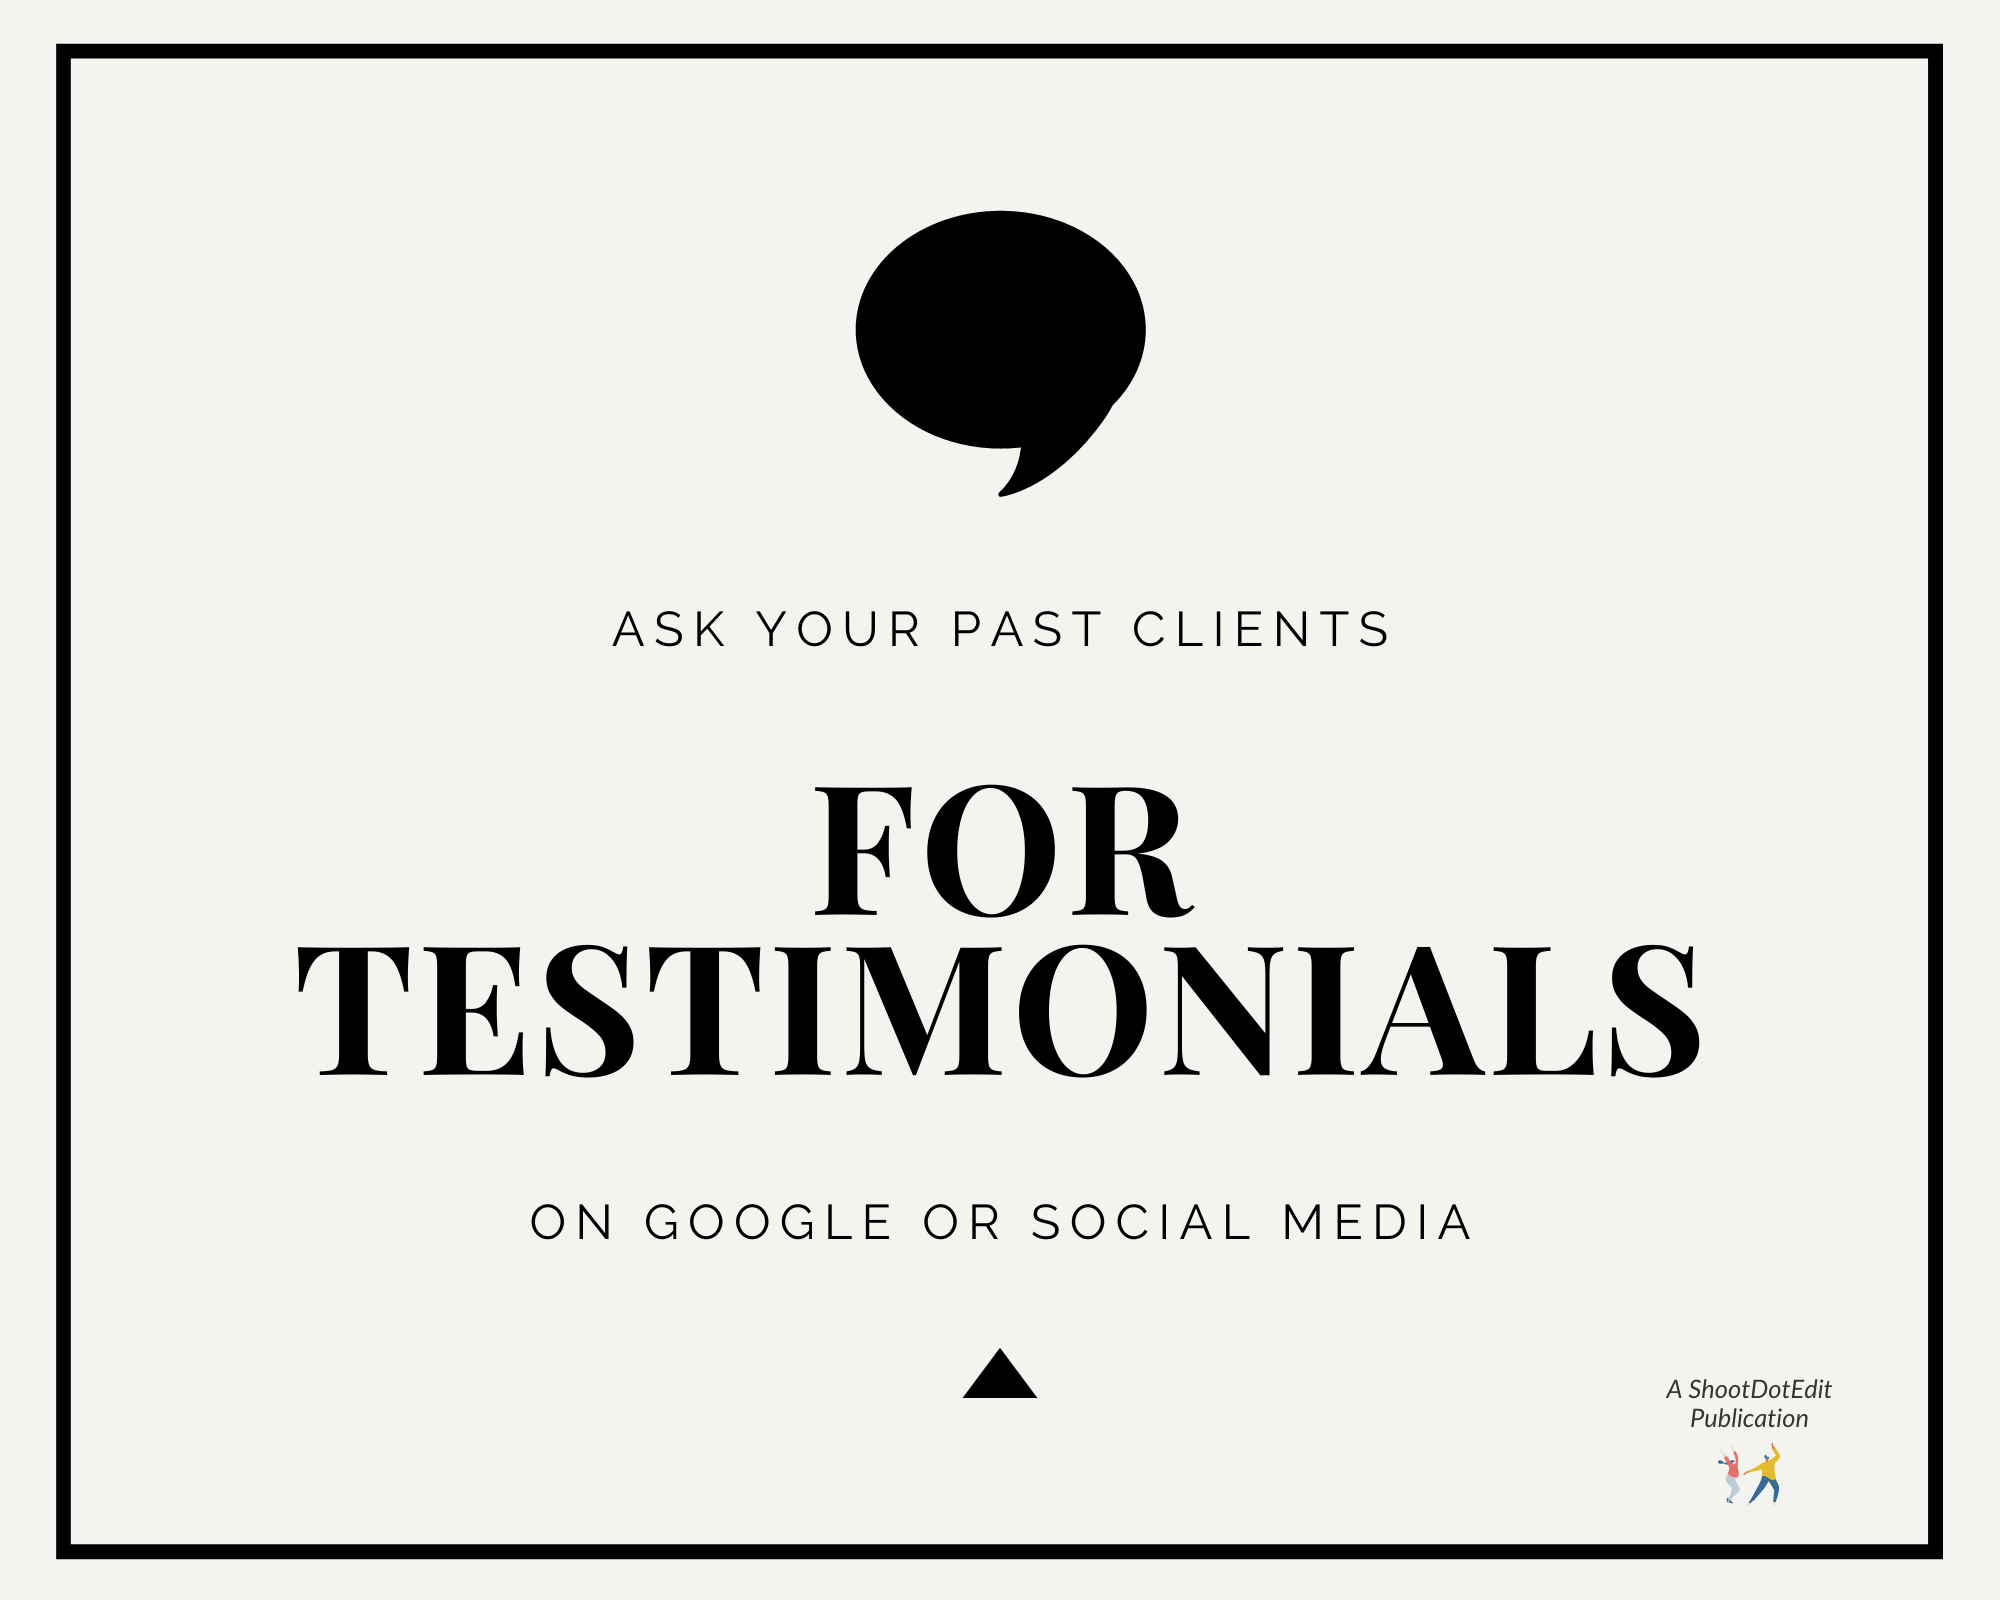 Infographic stating Ask Your Past Clients for Testimonials on Google or Social Media